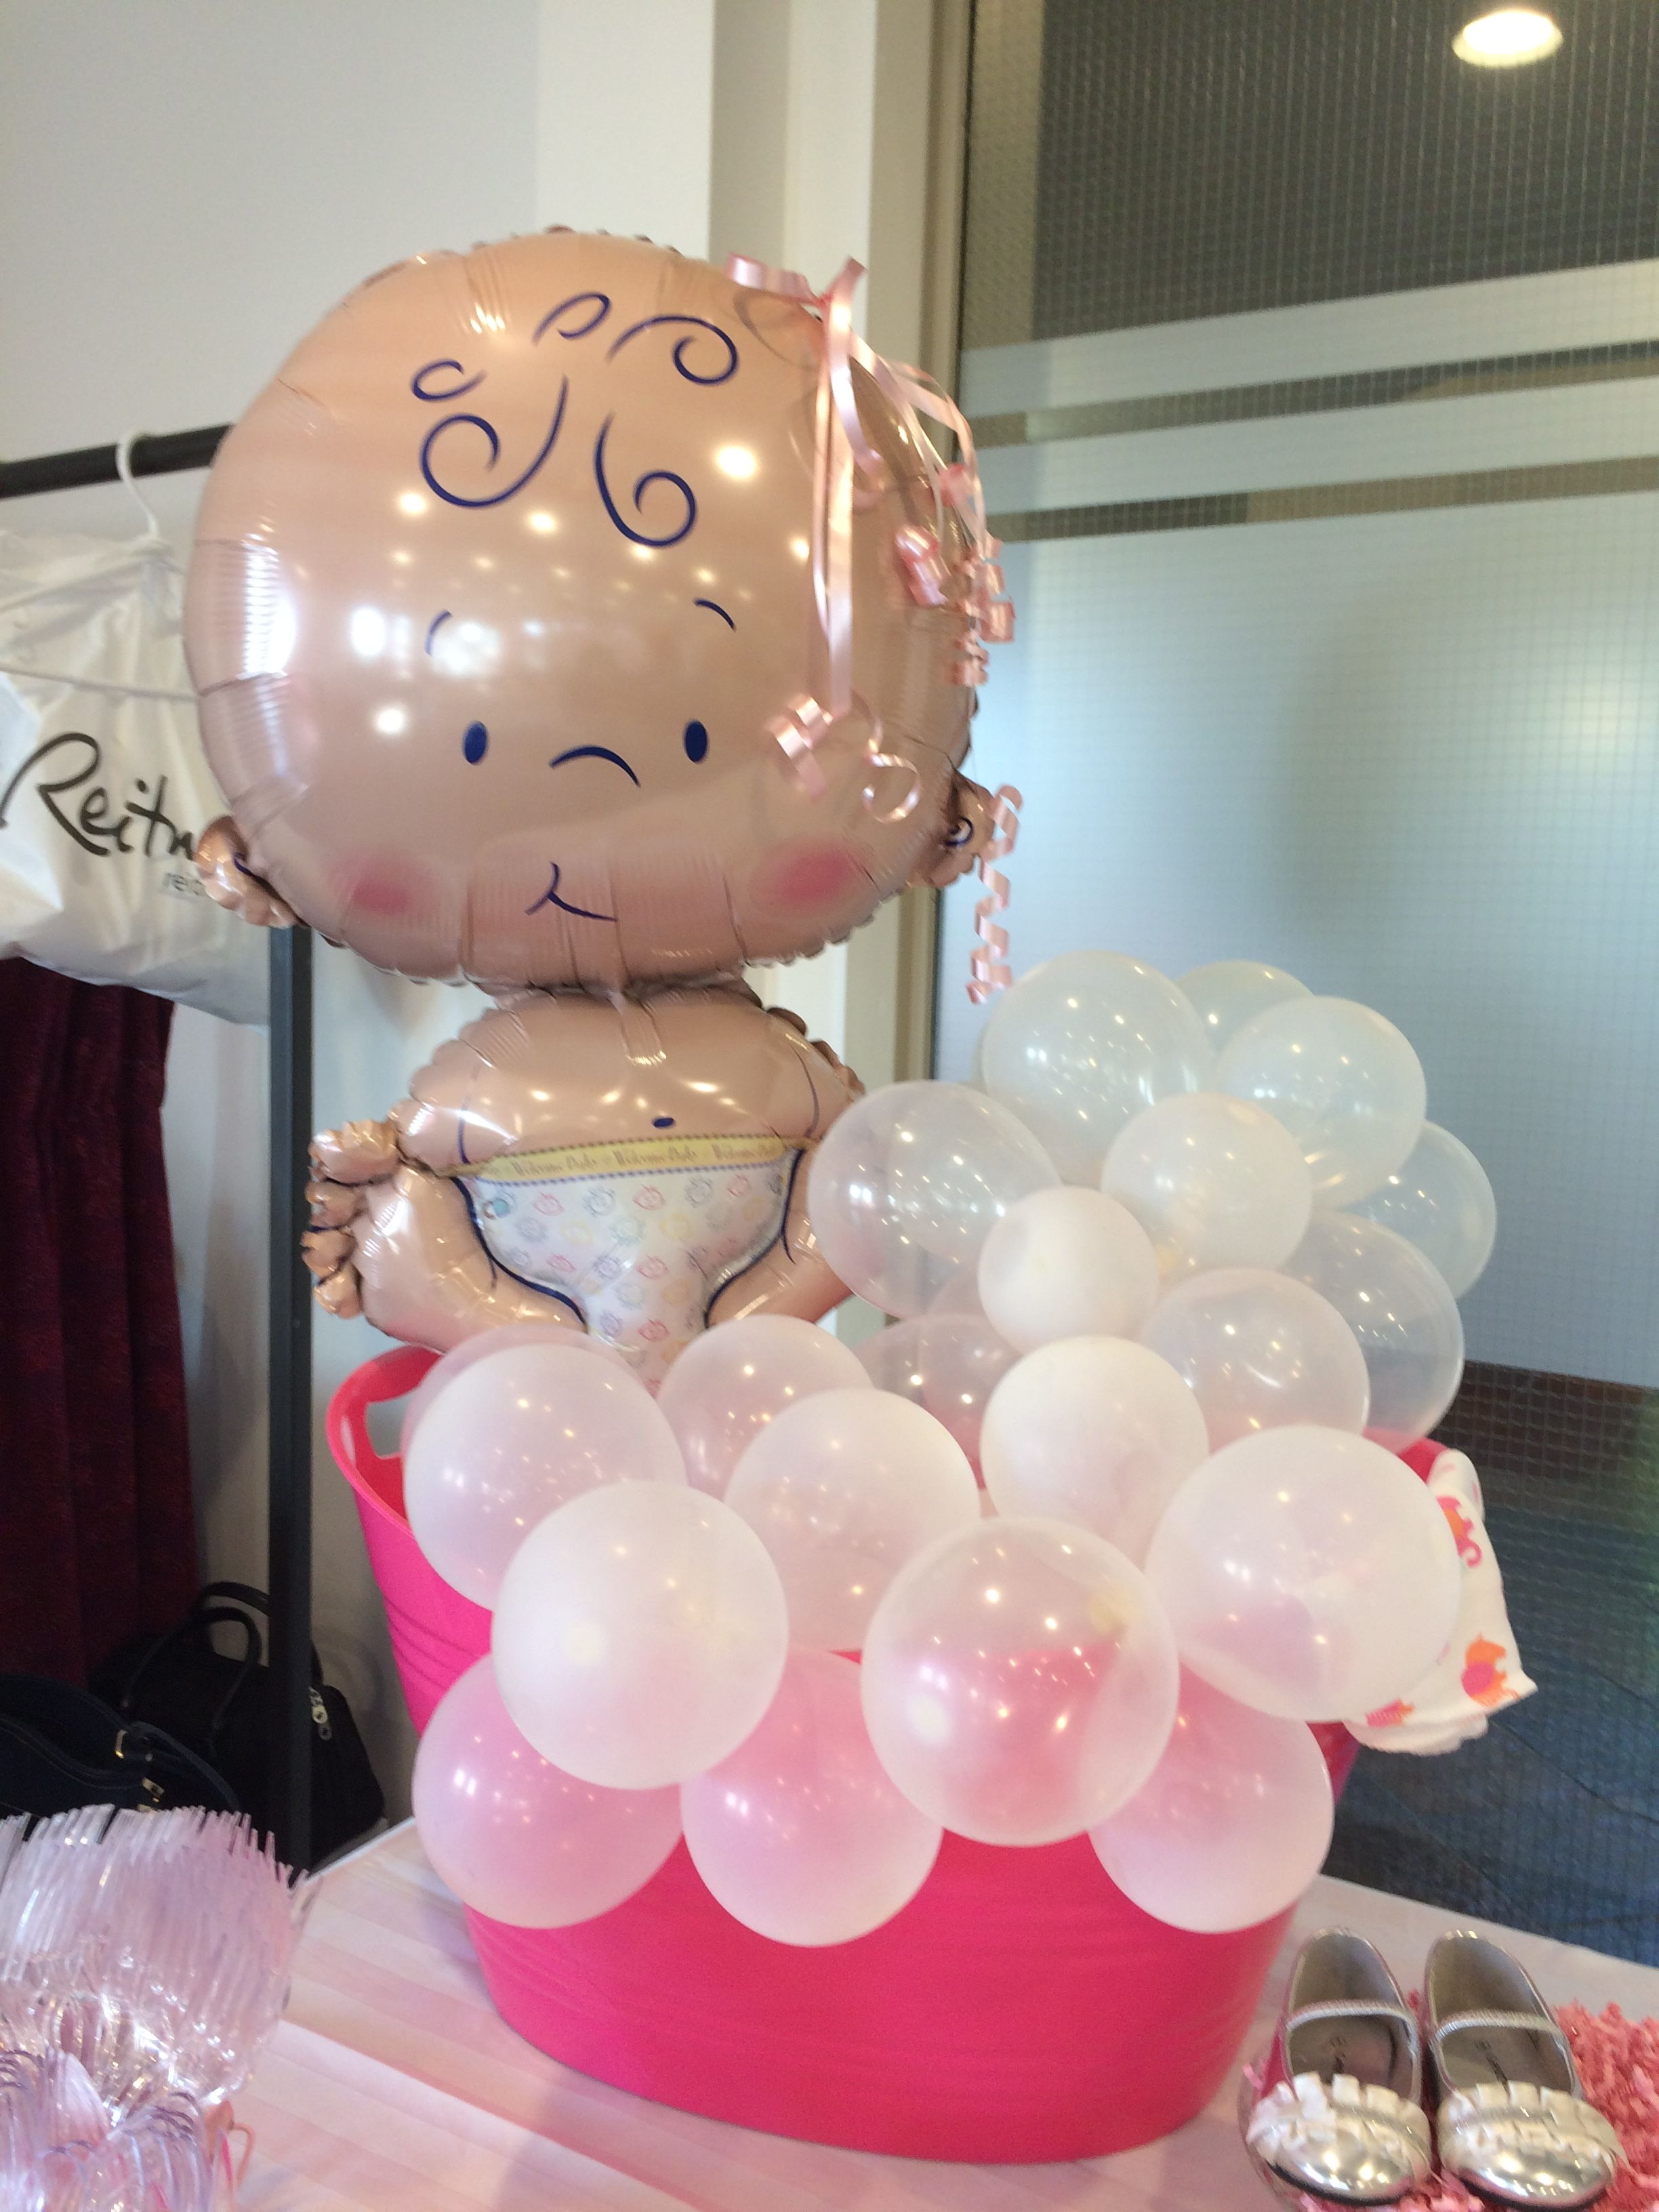 Pinterest Decoracion Baby Shower.Pin By Rosemari Tellez On Pink Baby Pinterest Decoracion